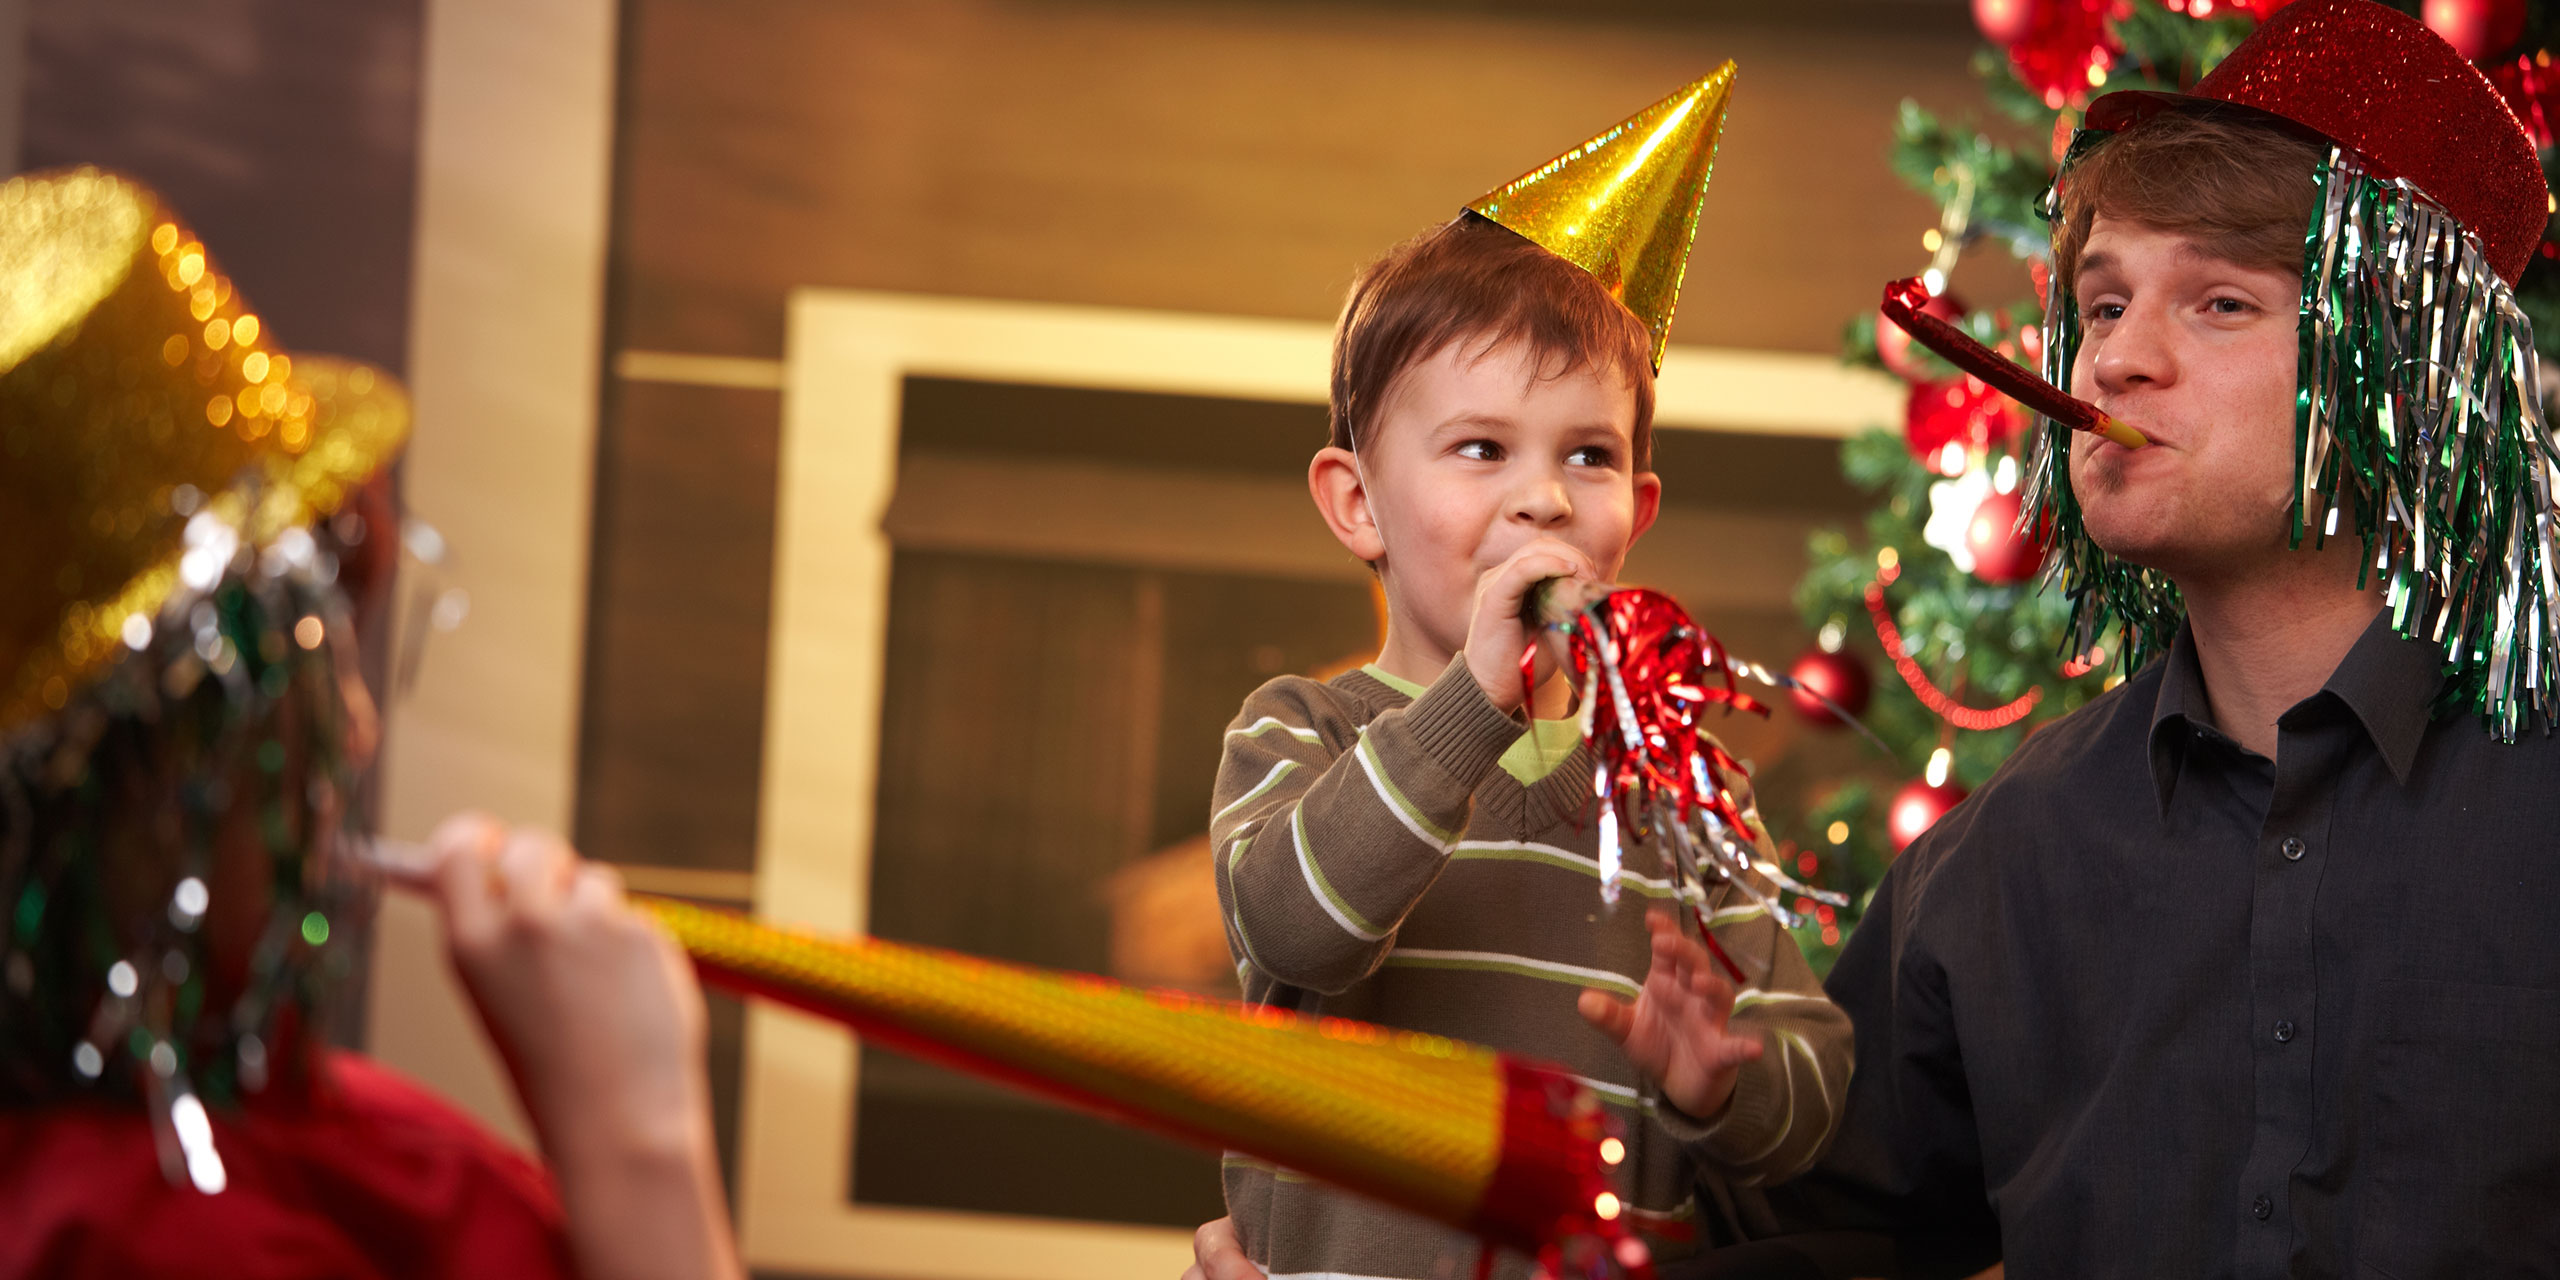 Family Celebrating New Year's Eve; Courtesy of StockLite/Shutterstock.com